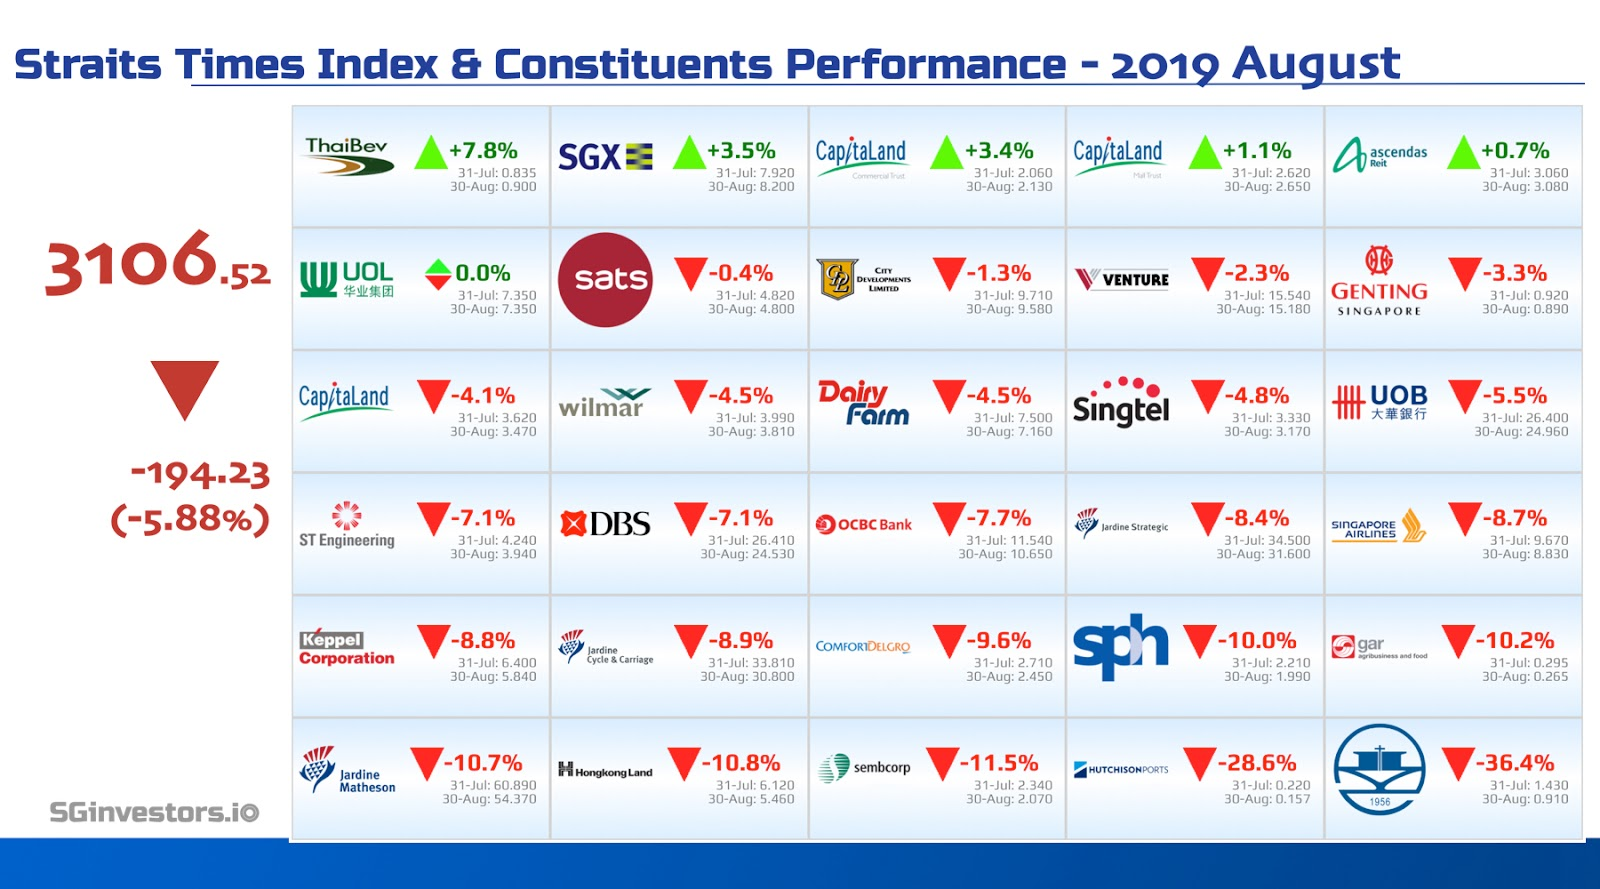 Performance of Straits Times Index (STI) Constituents in August 2019